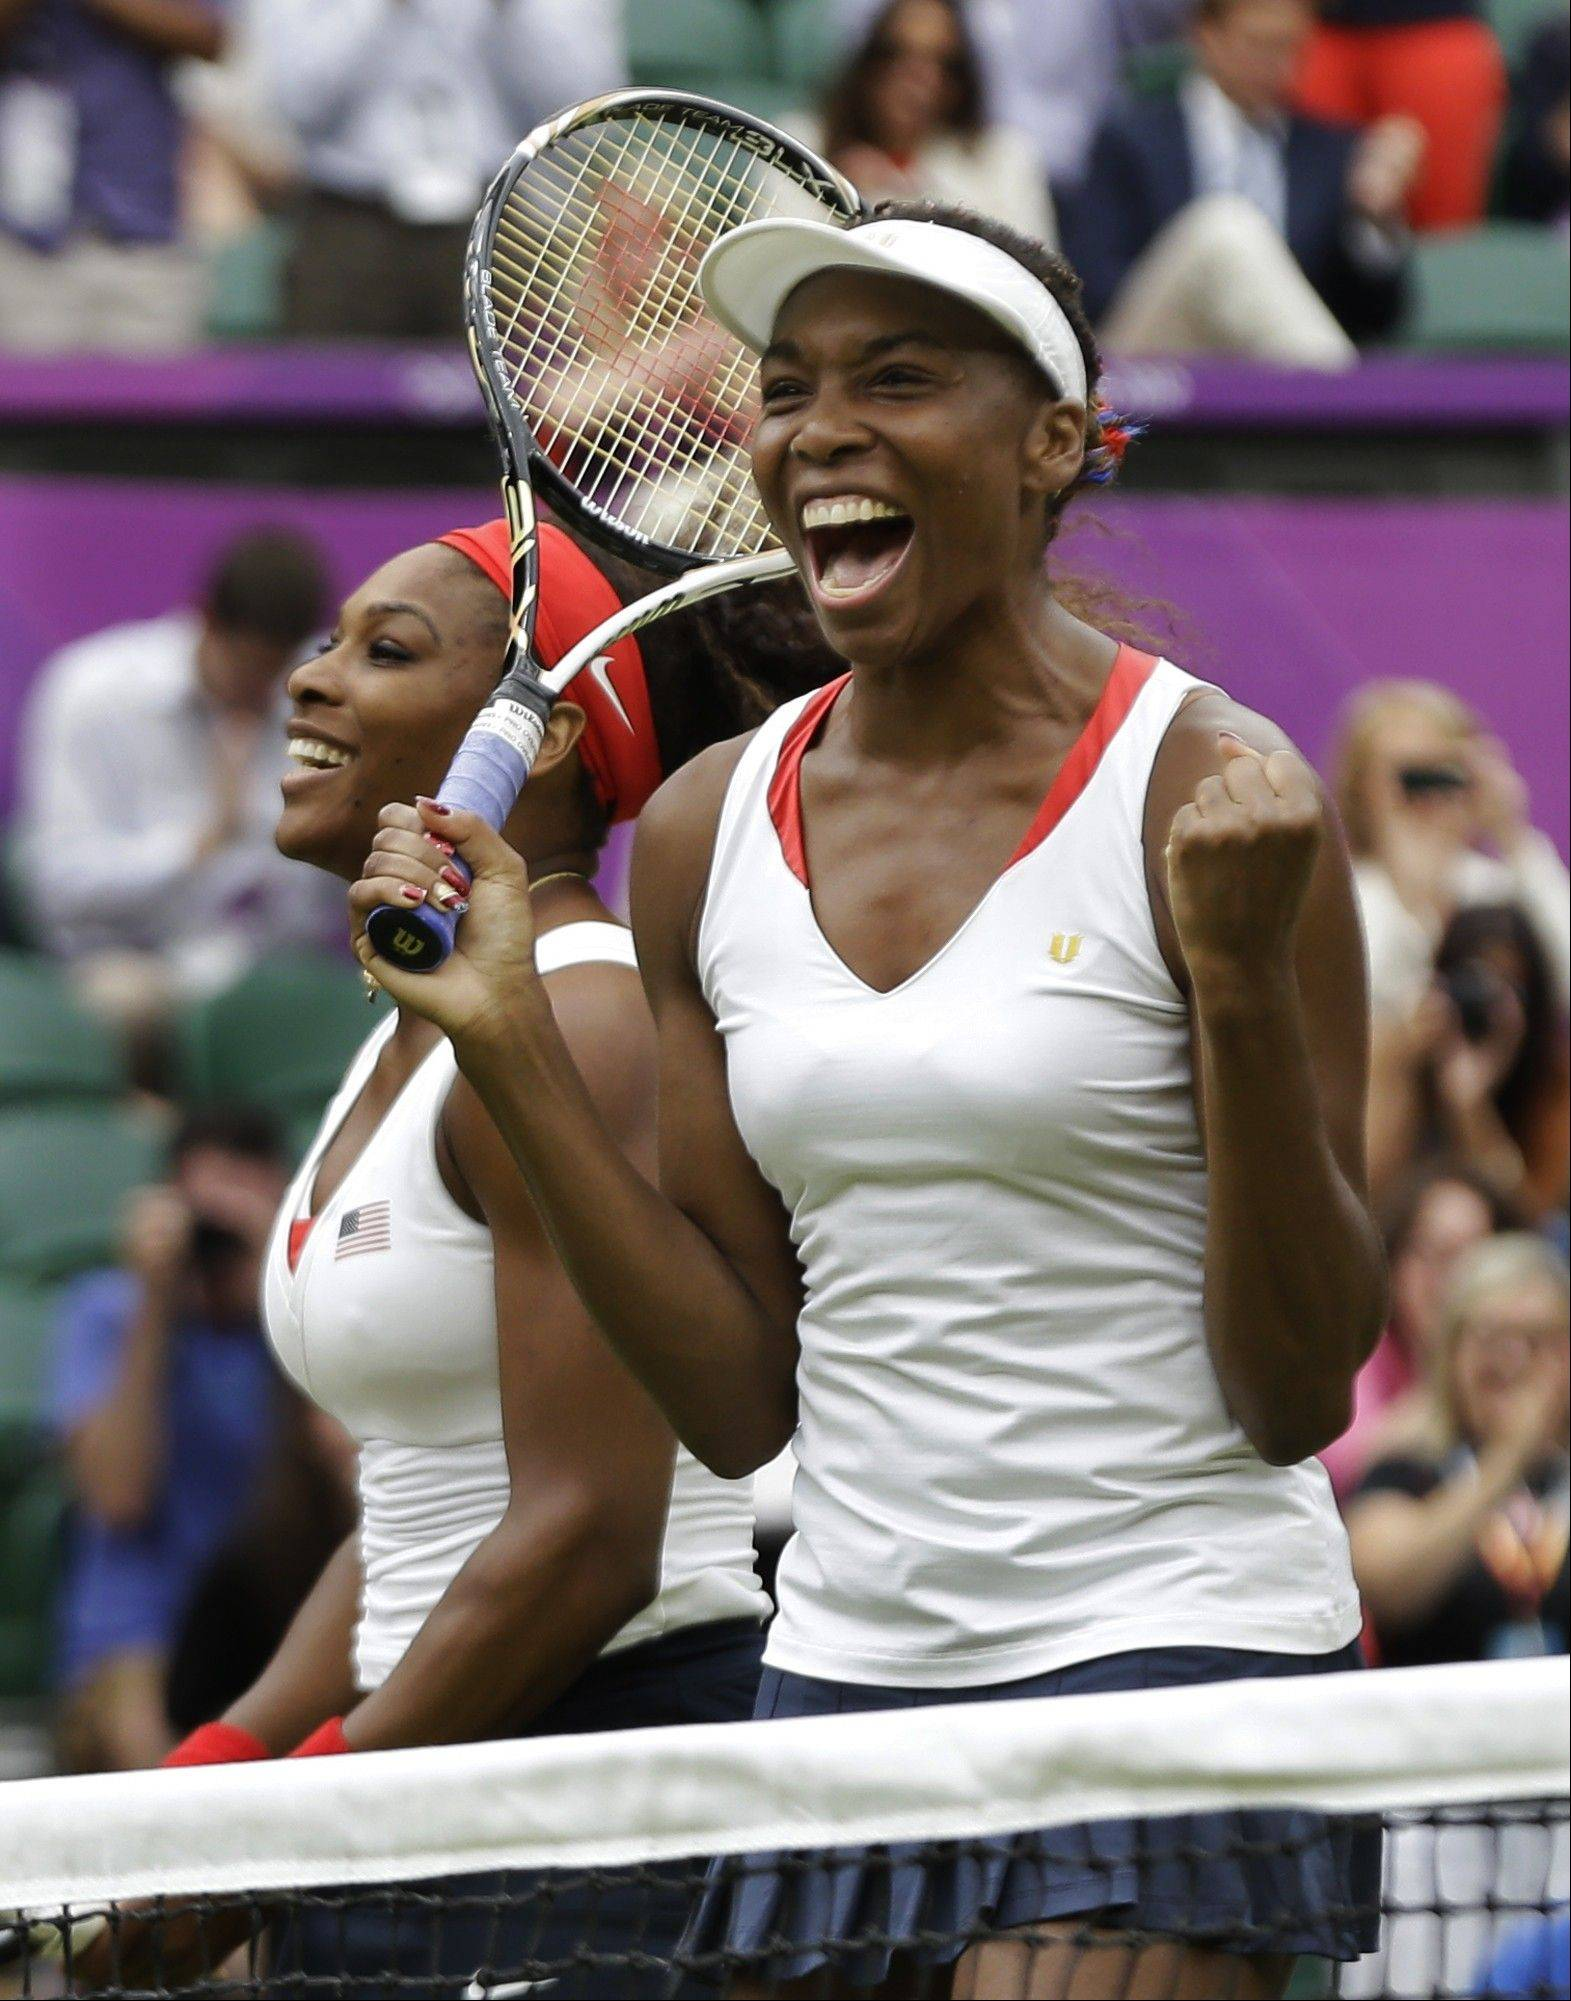 Venus Williams, right, and Serena Williams of the United States celebrate their victory against Andrea Hlavackova and Lucie Hradecka of the Czech Republic during the gold medal women's doubles match at the All England Lawn Tennis Club in Wimbledon, London at the 2012 Summer Olympics, Sunday, Aug. 5, 2012.